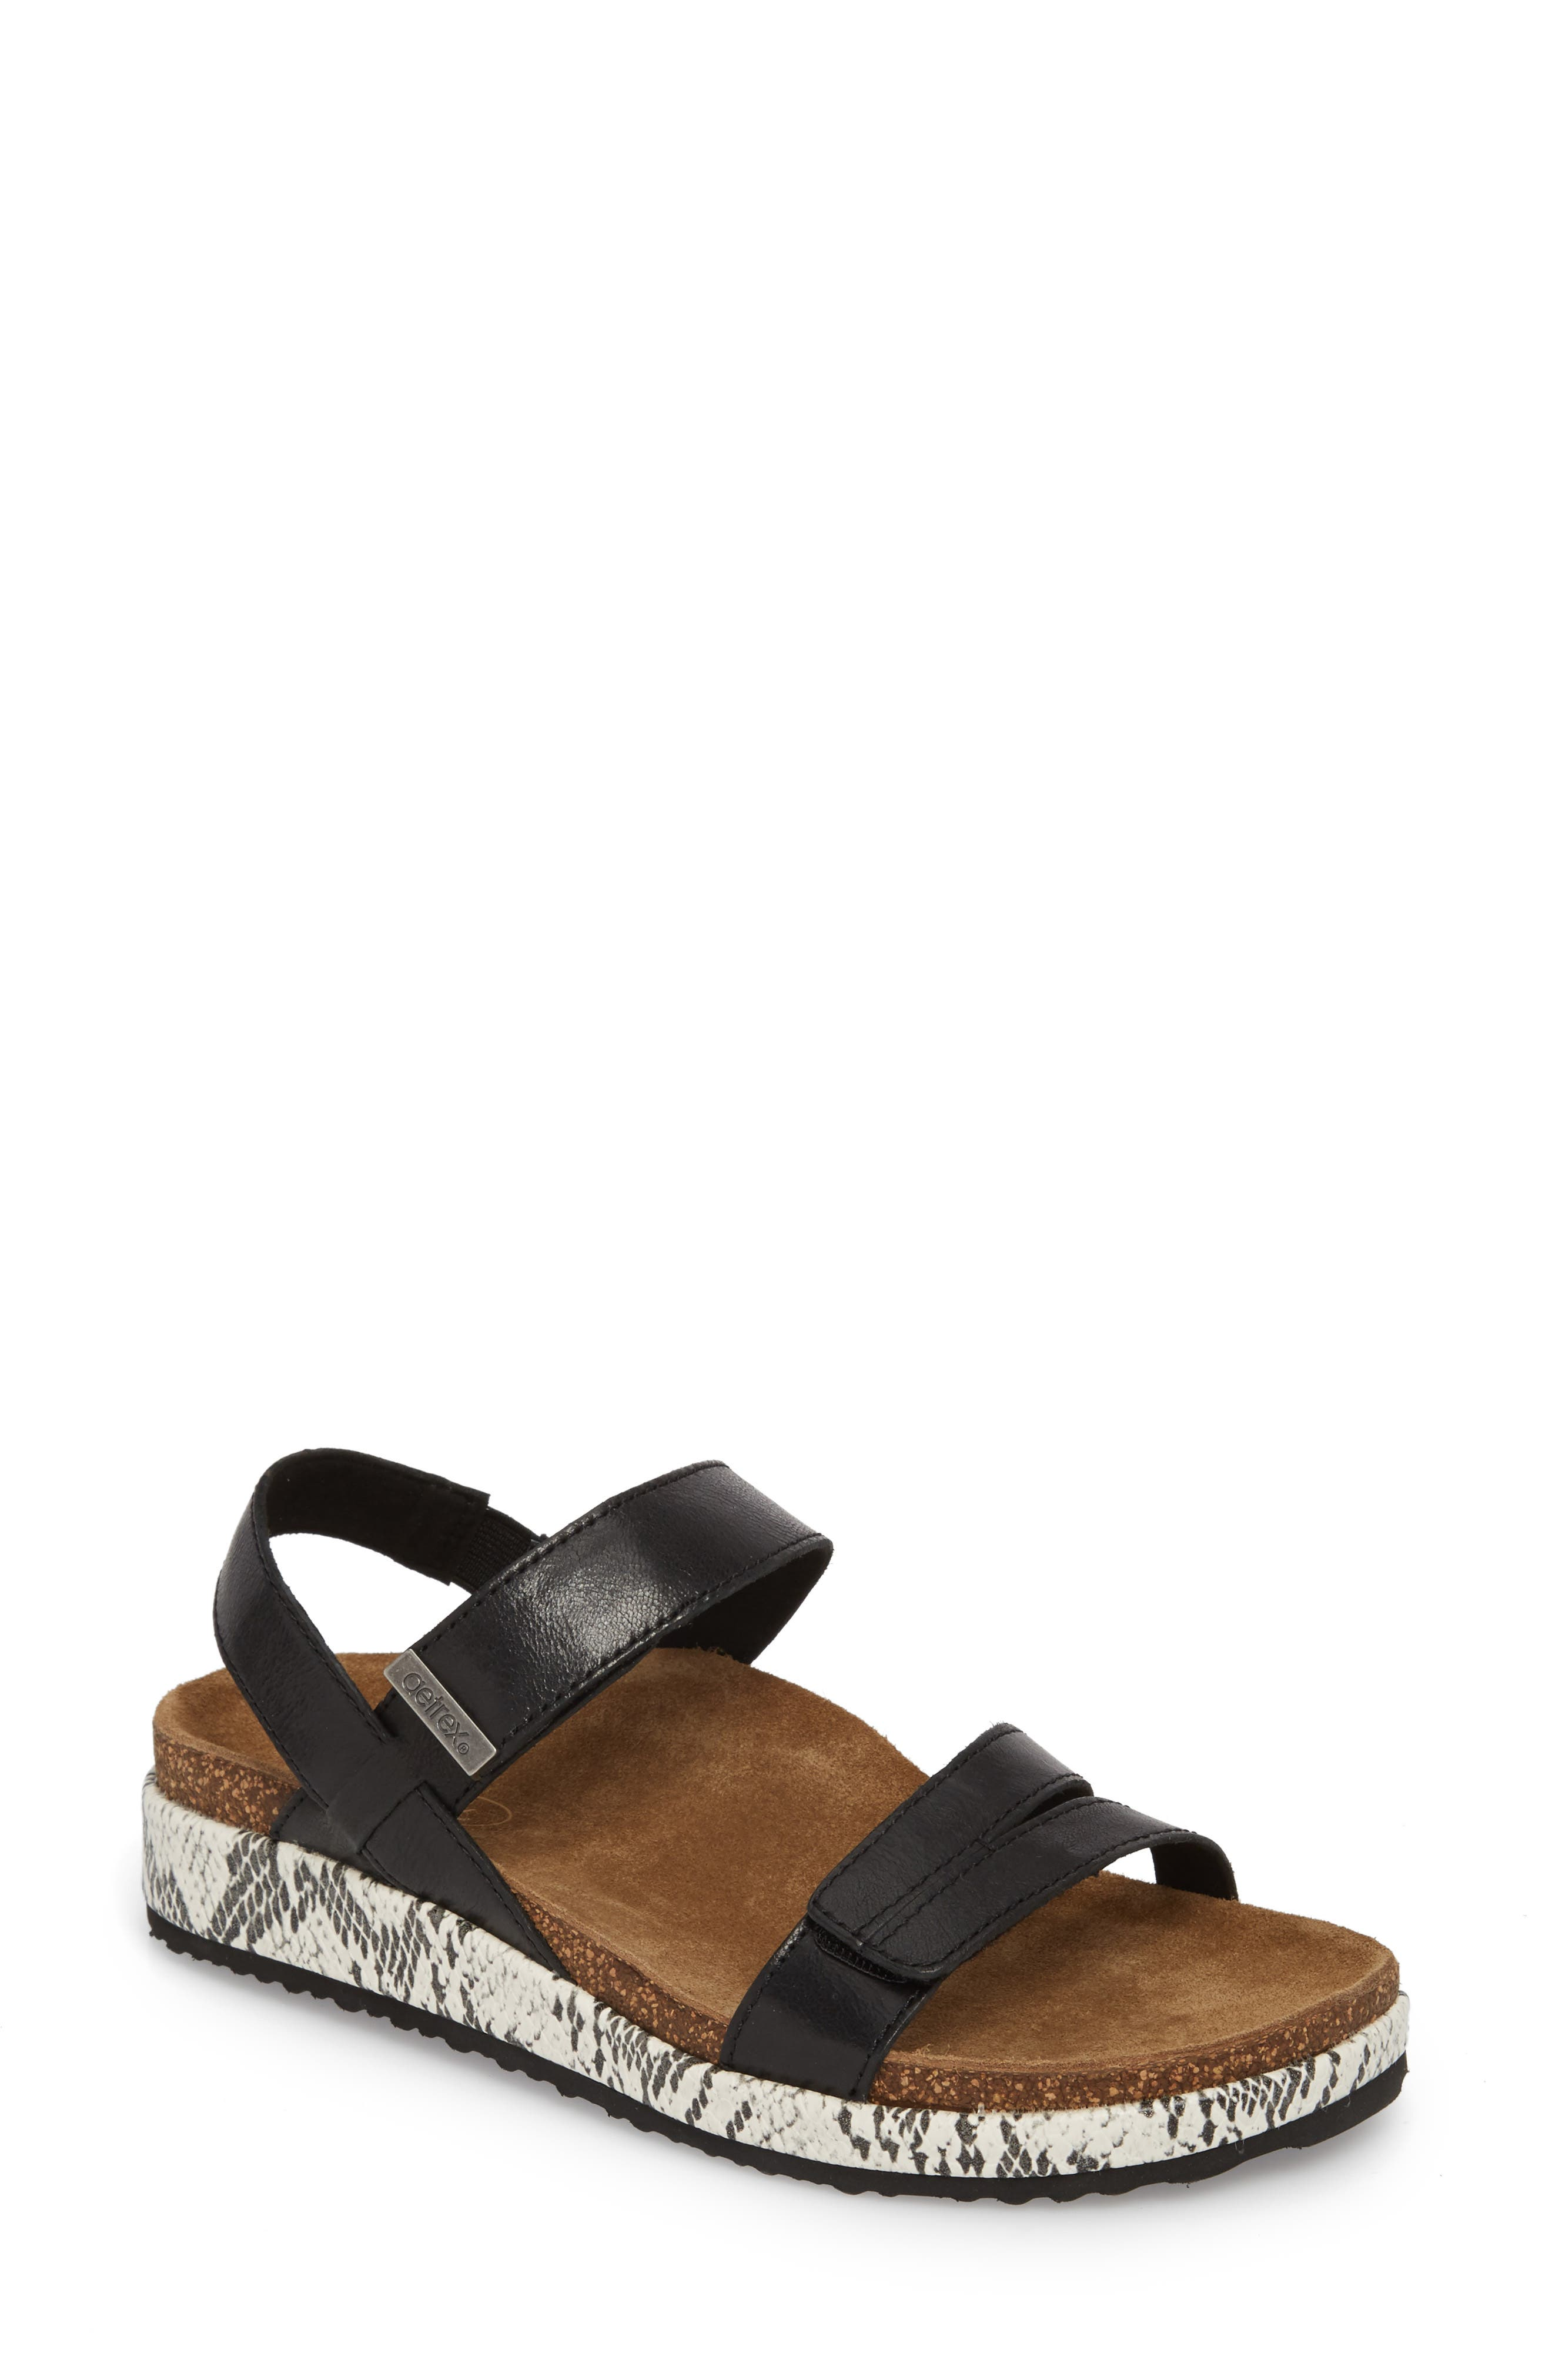 Bethany Sandal,                         Main,                         color, BLACK LEATHER